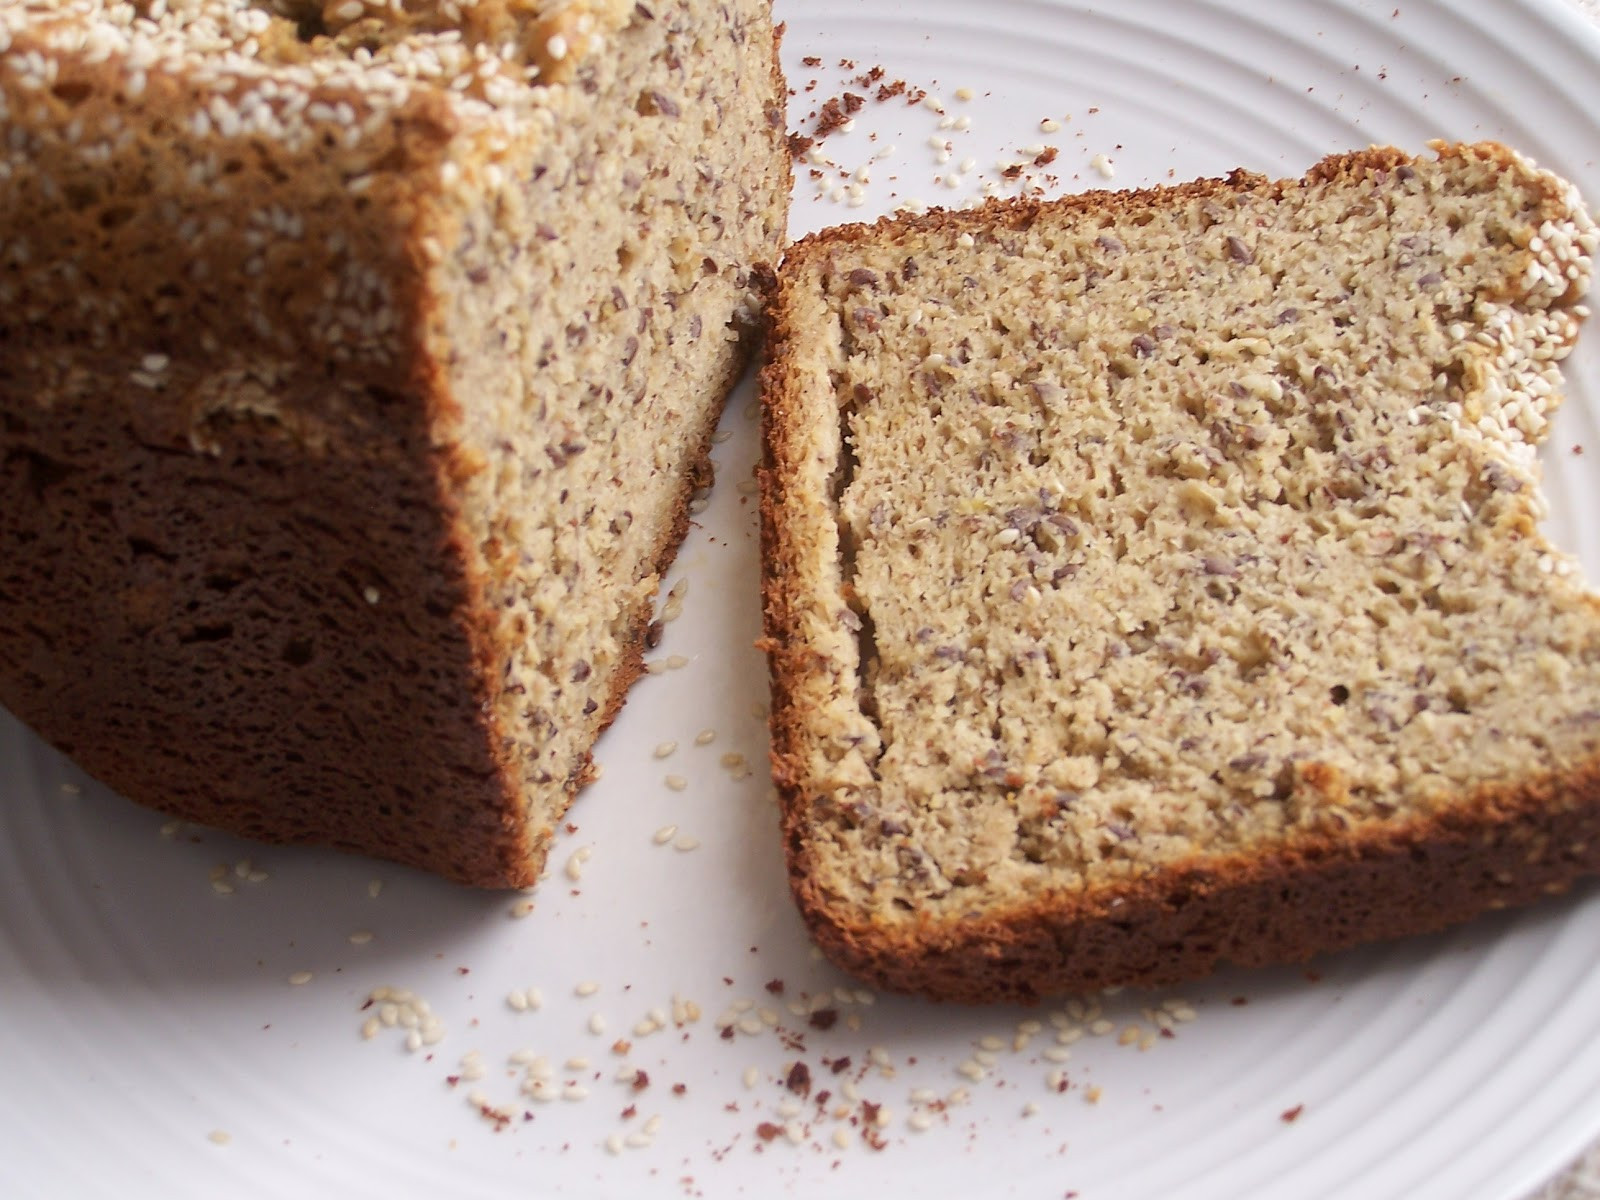 Gluten Free Bread Recipe Breadmaker  Gluten Free High Protein Bread in the Bread Machine